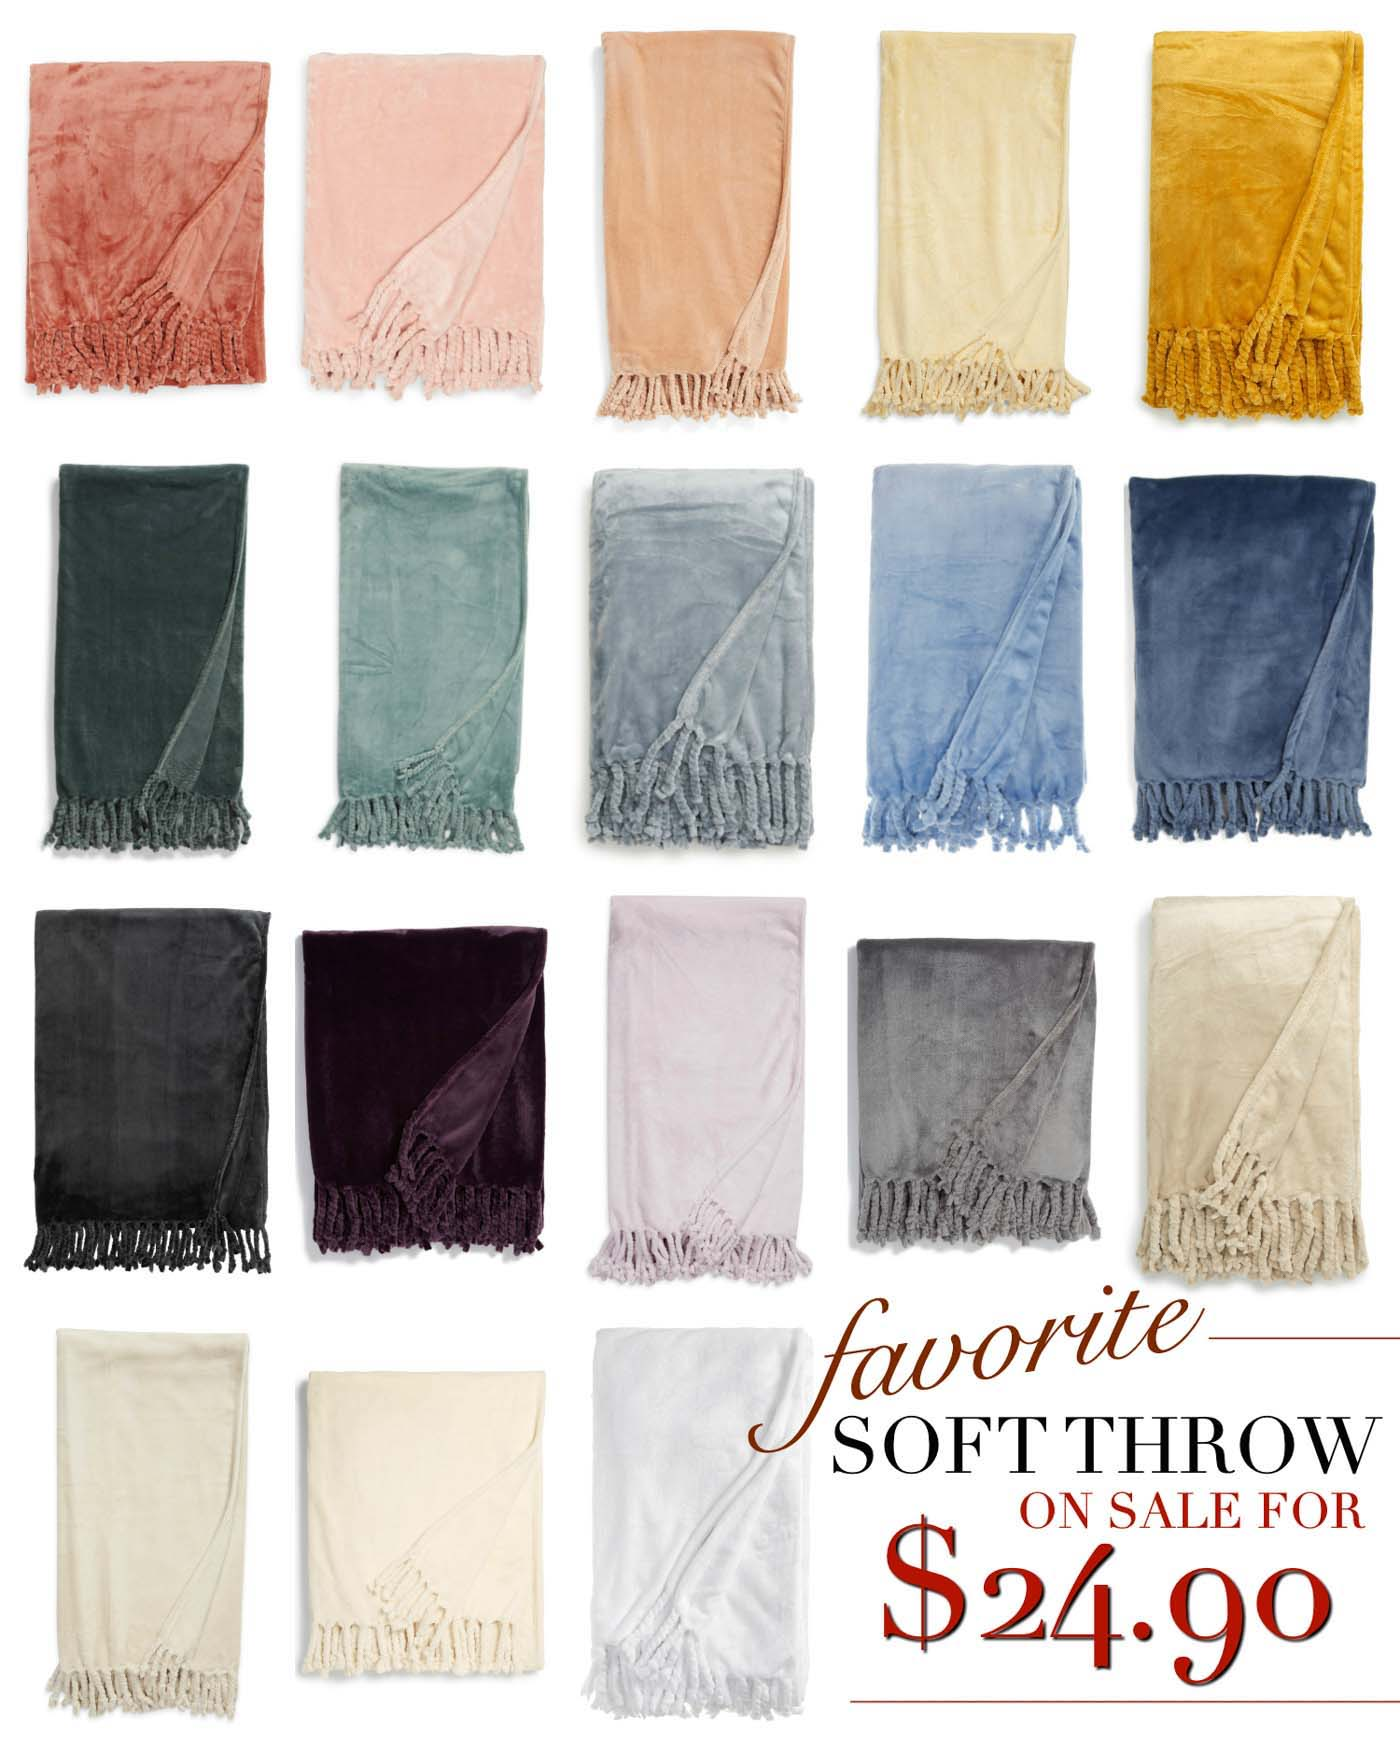 Favorite Cozy Throw for Any Room in the House